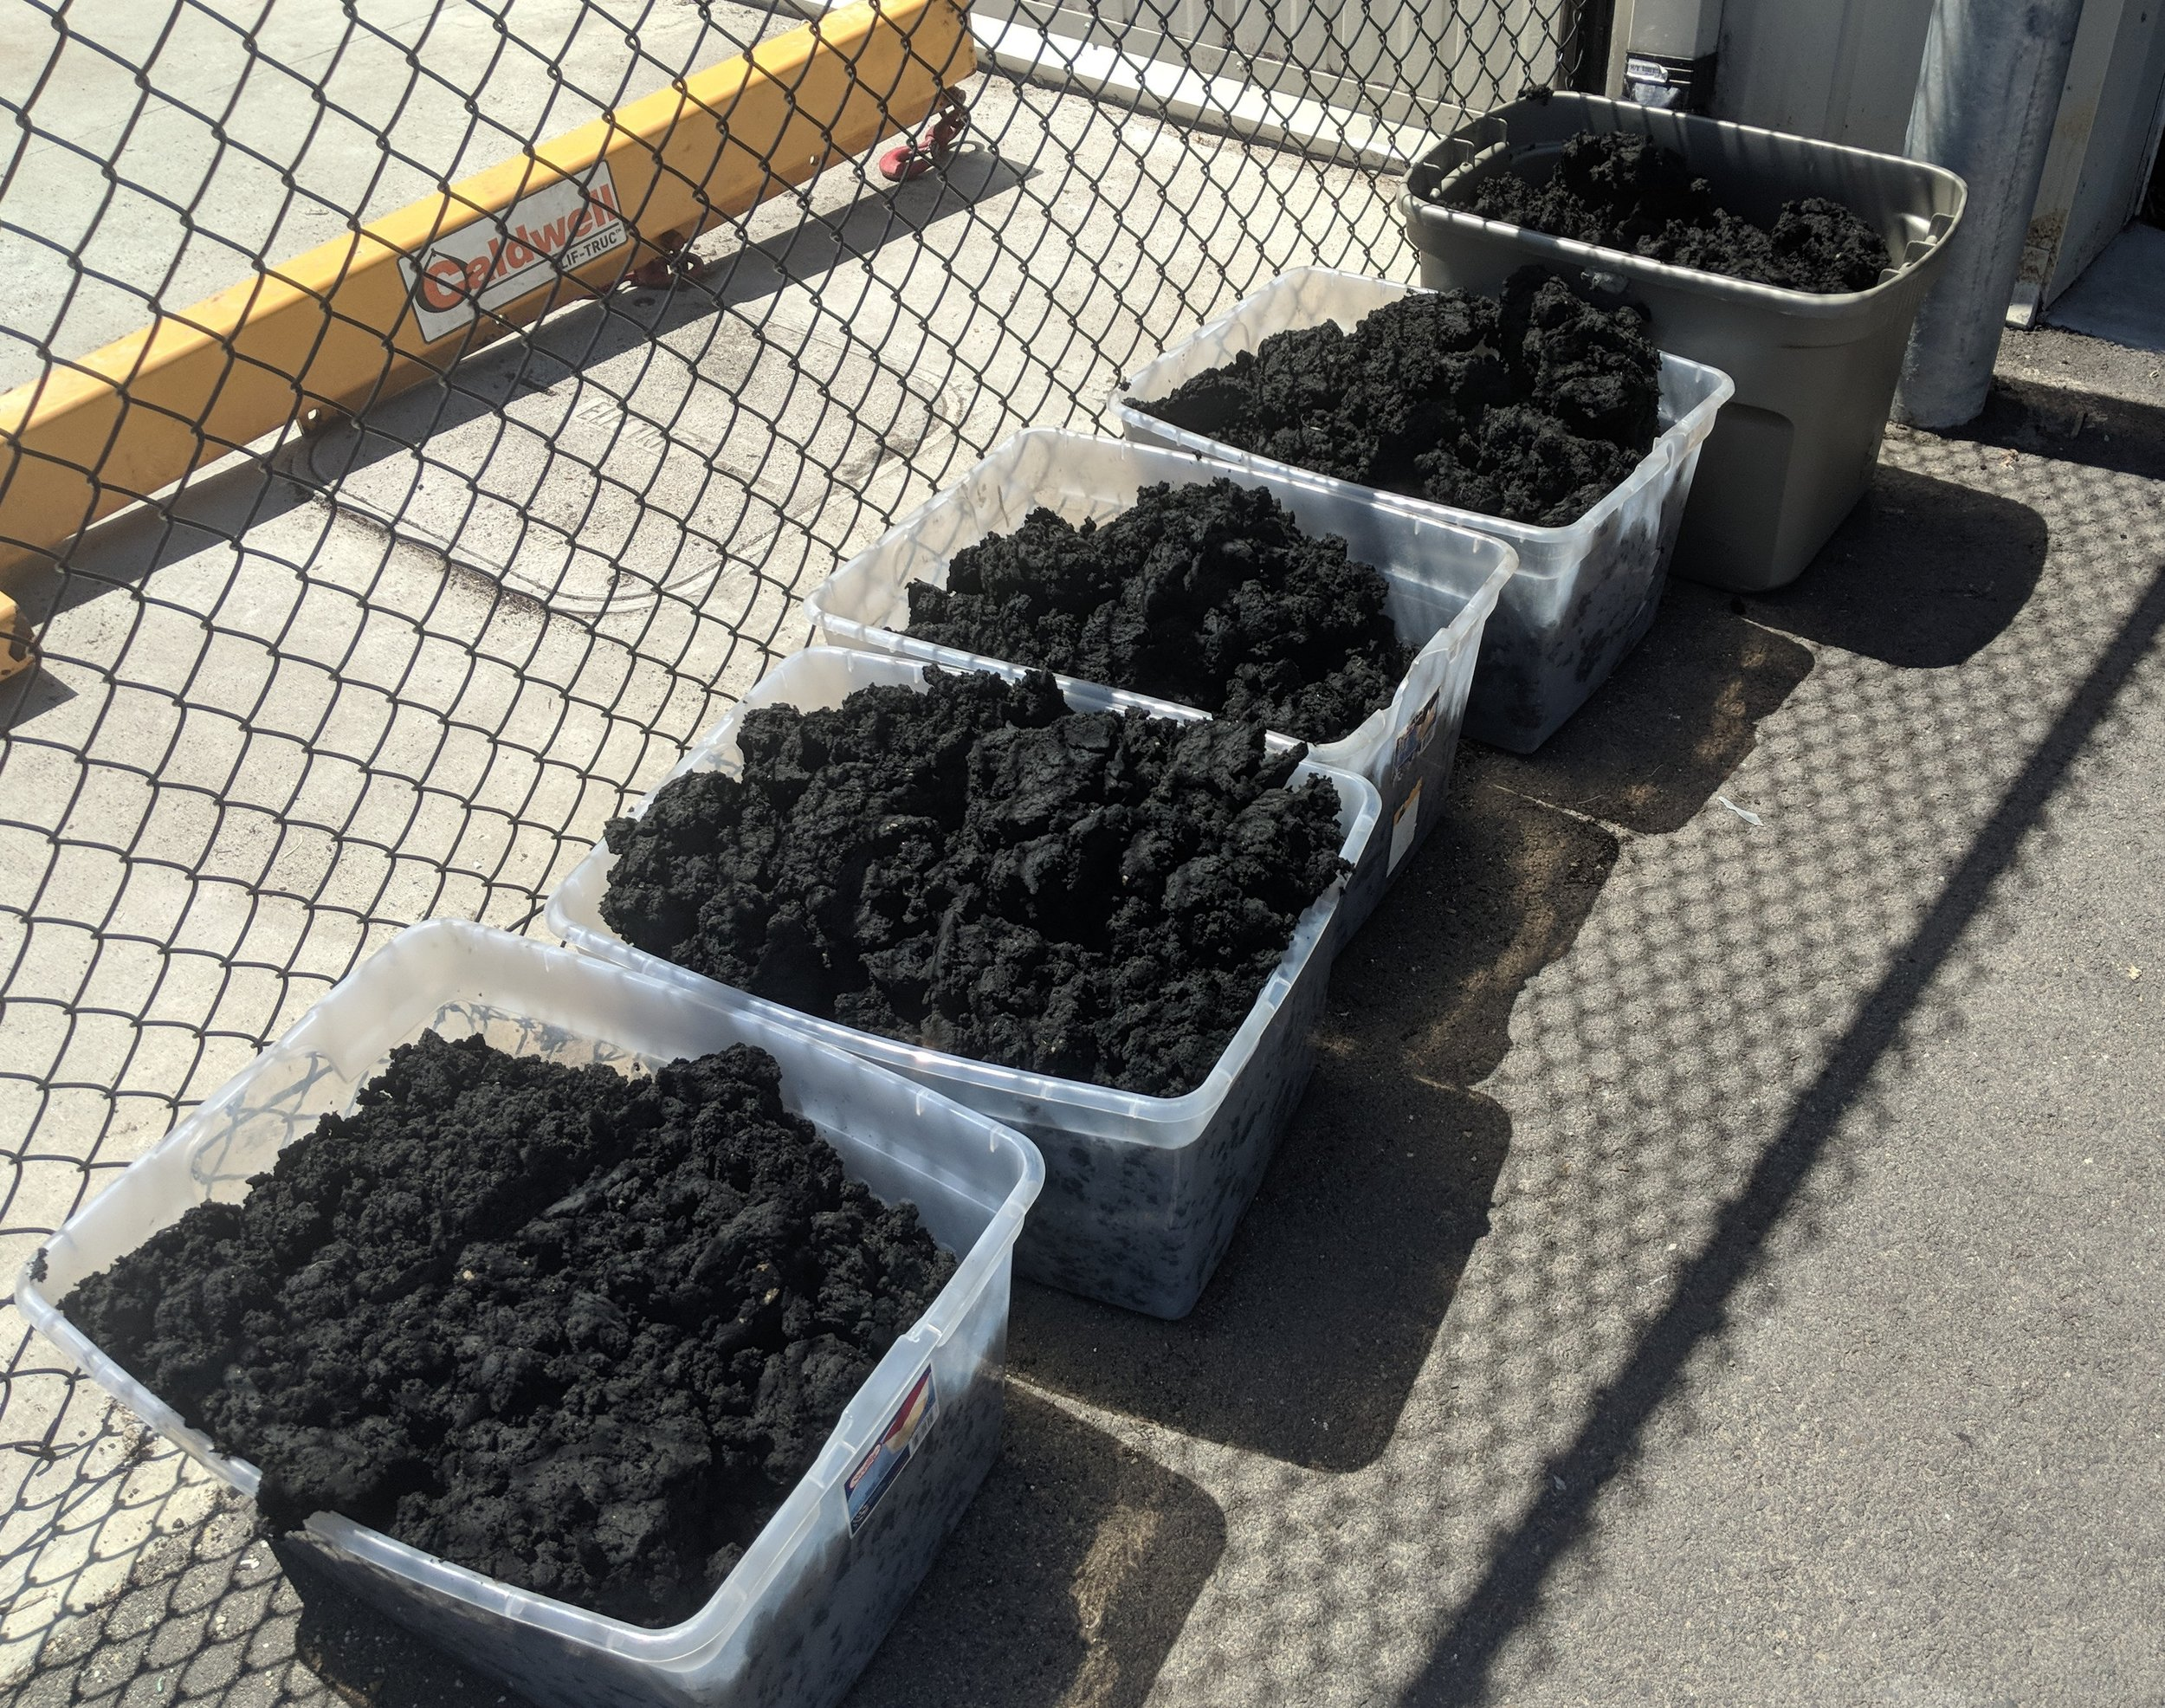 A byproduct of the anaerobic digester is used as a compost by a local landscaper.